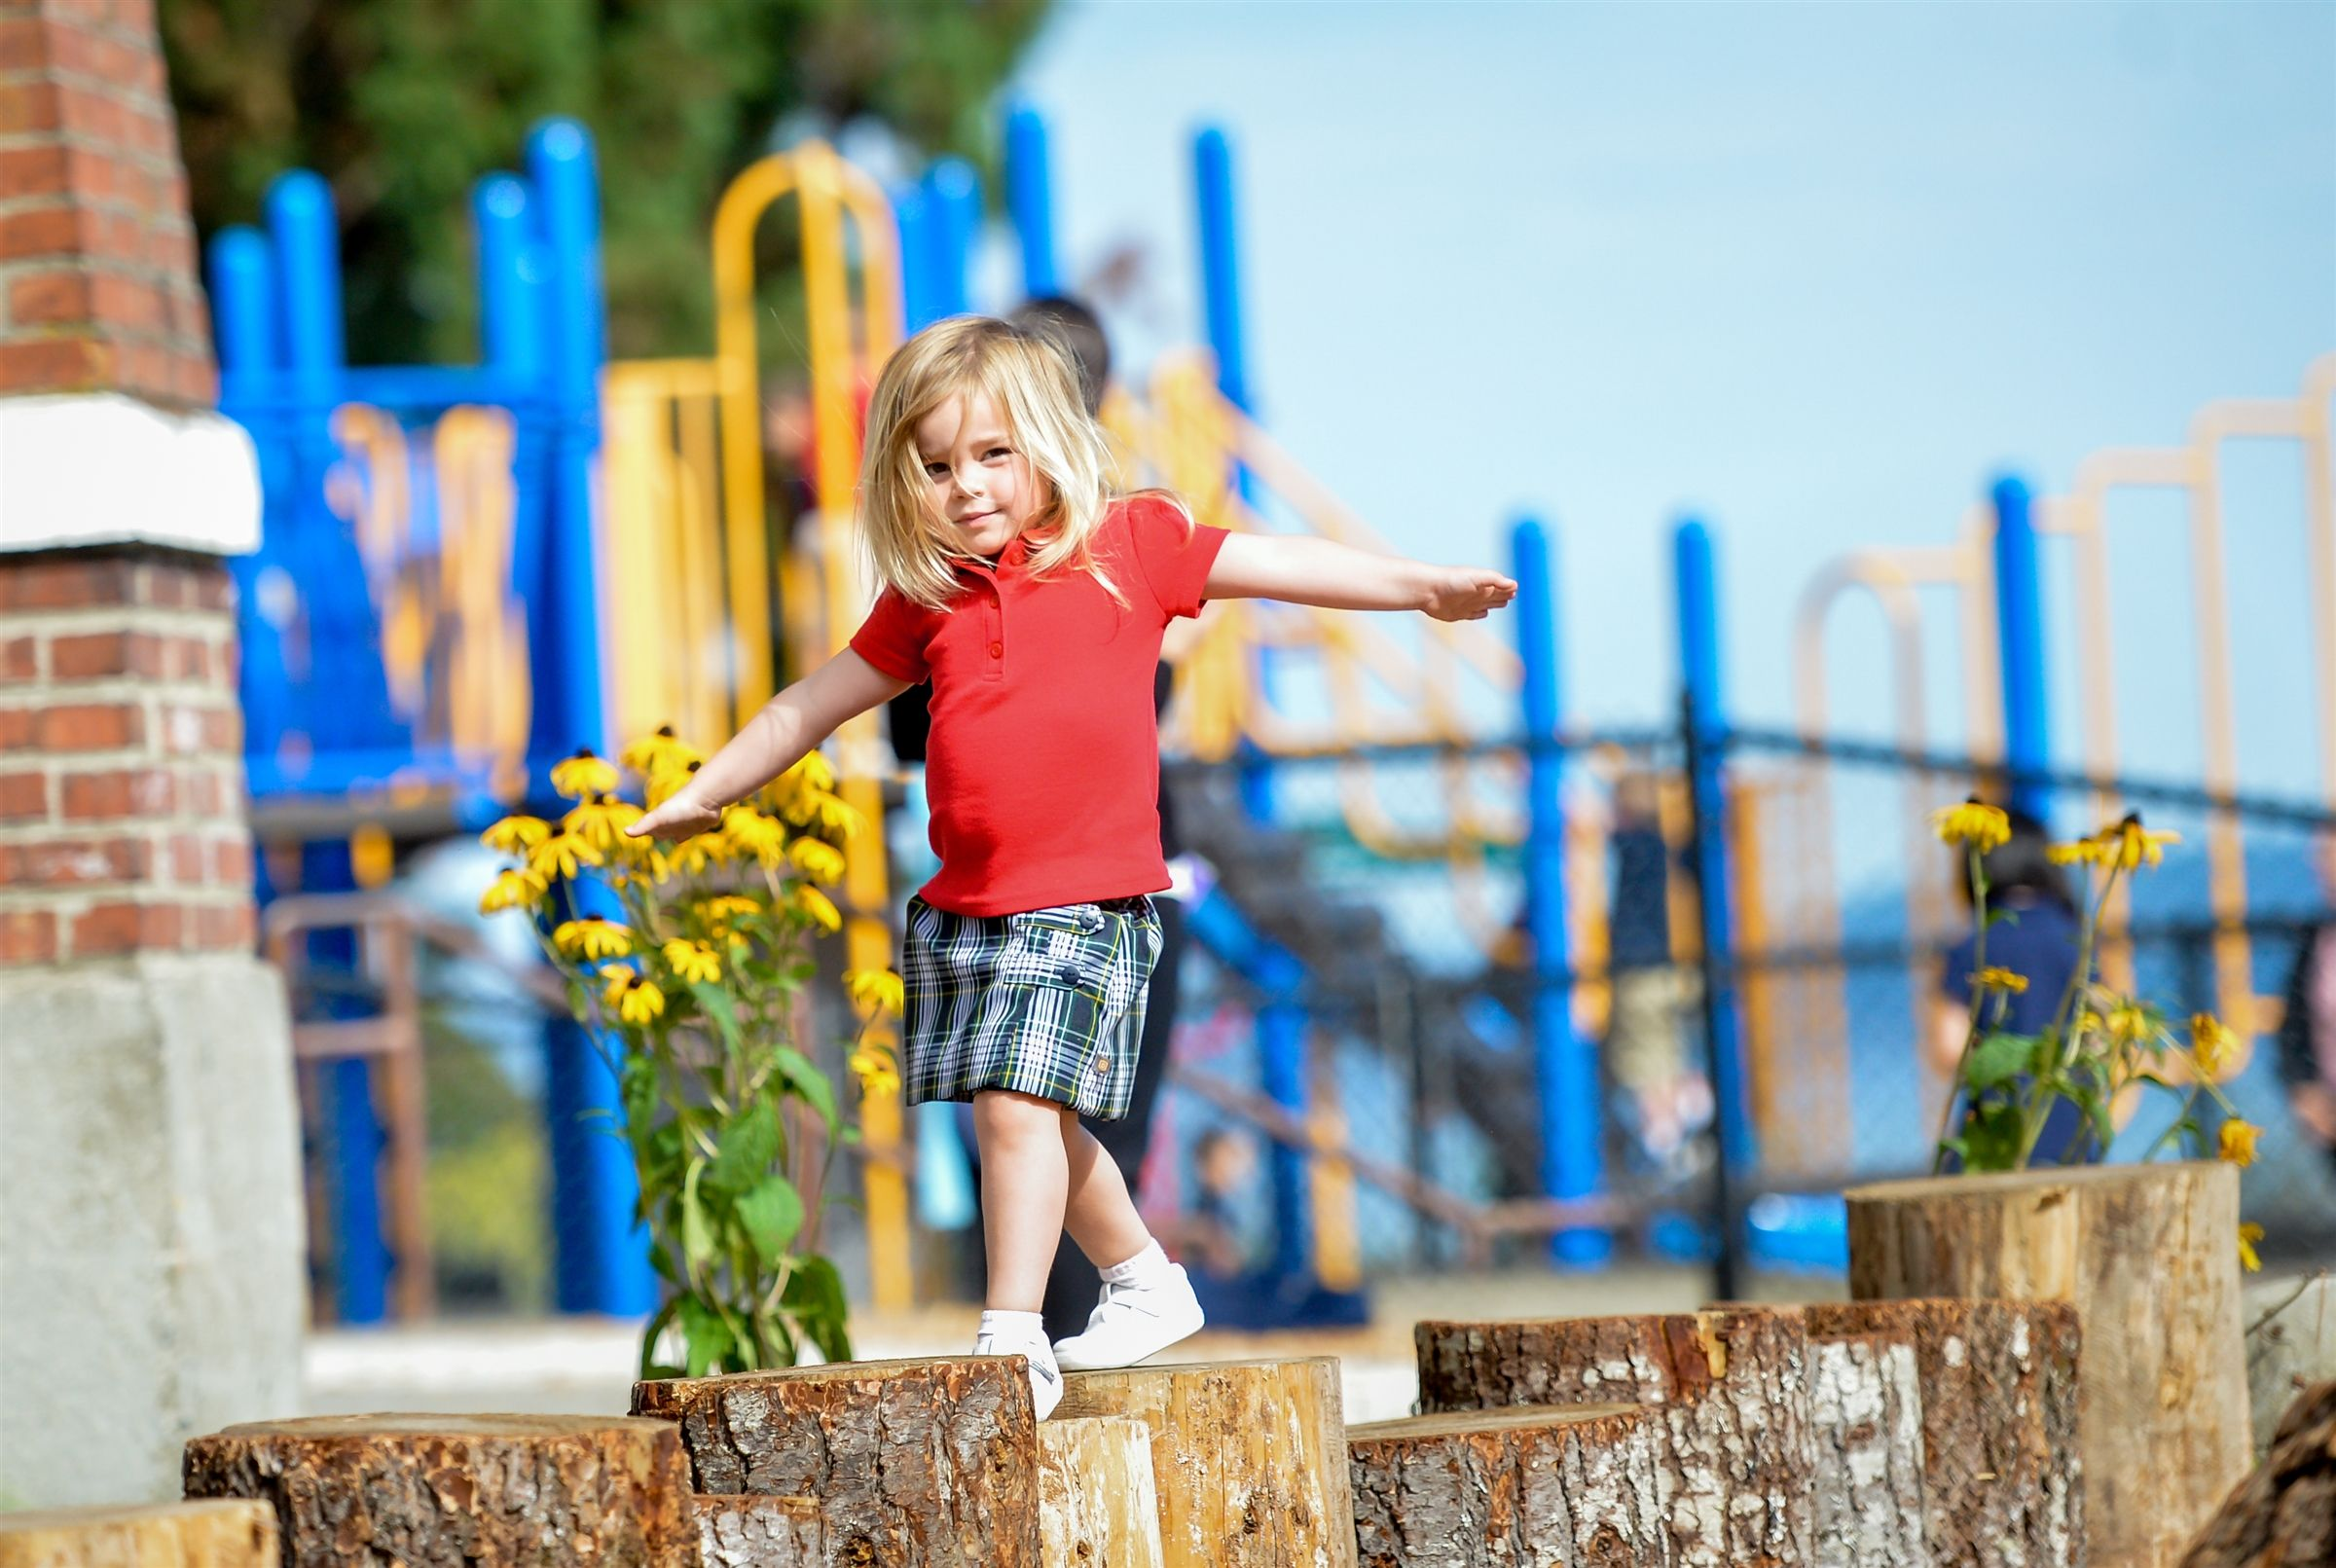 Annie Wright's playground combines fun play structures with imaginative natural spaces and has the best view in town!